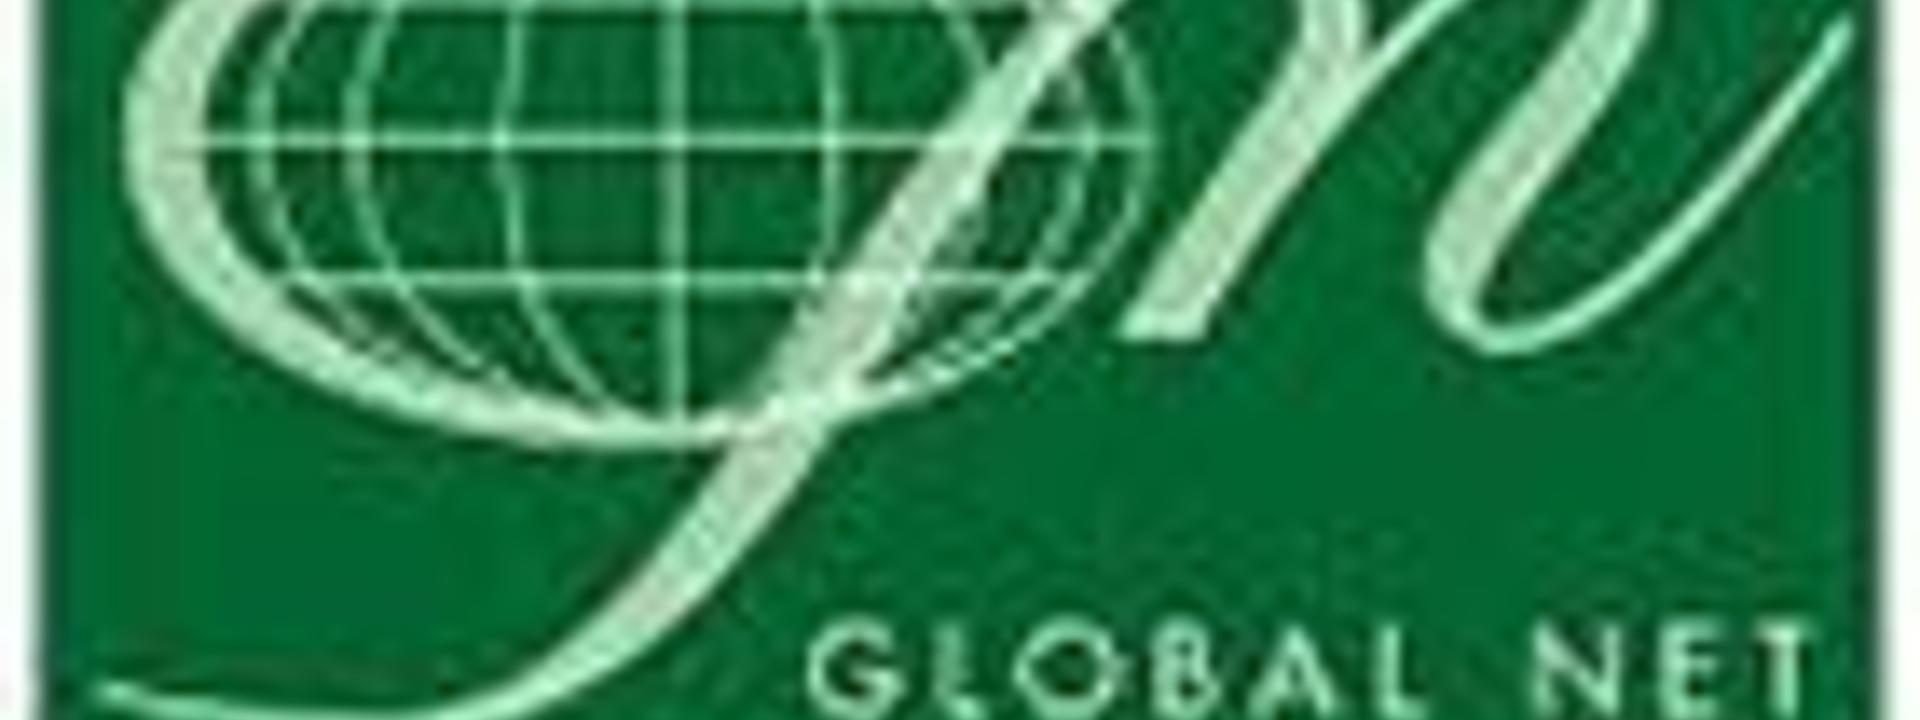 Global Net New Zealand Ltd